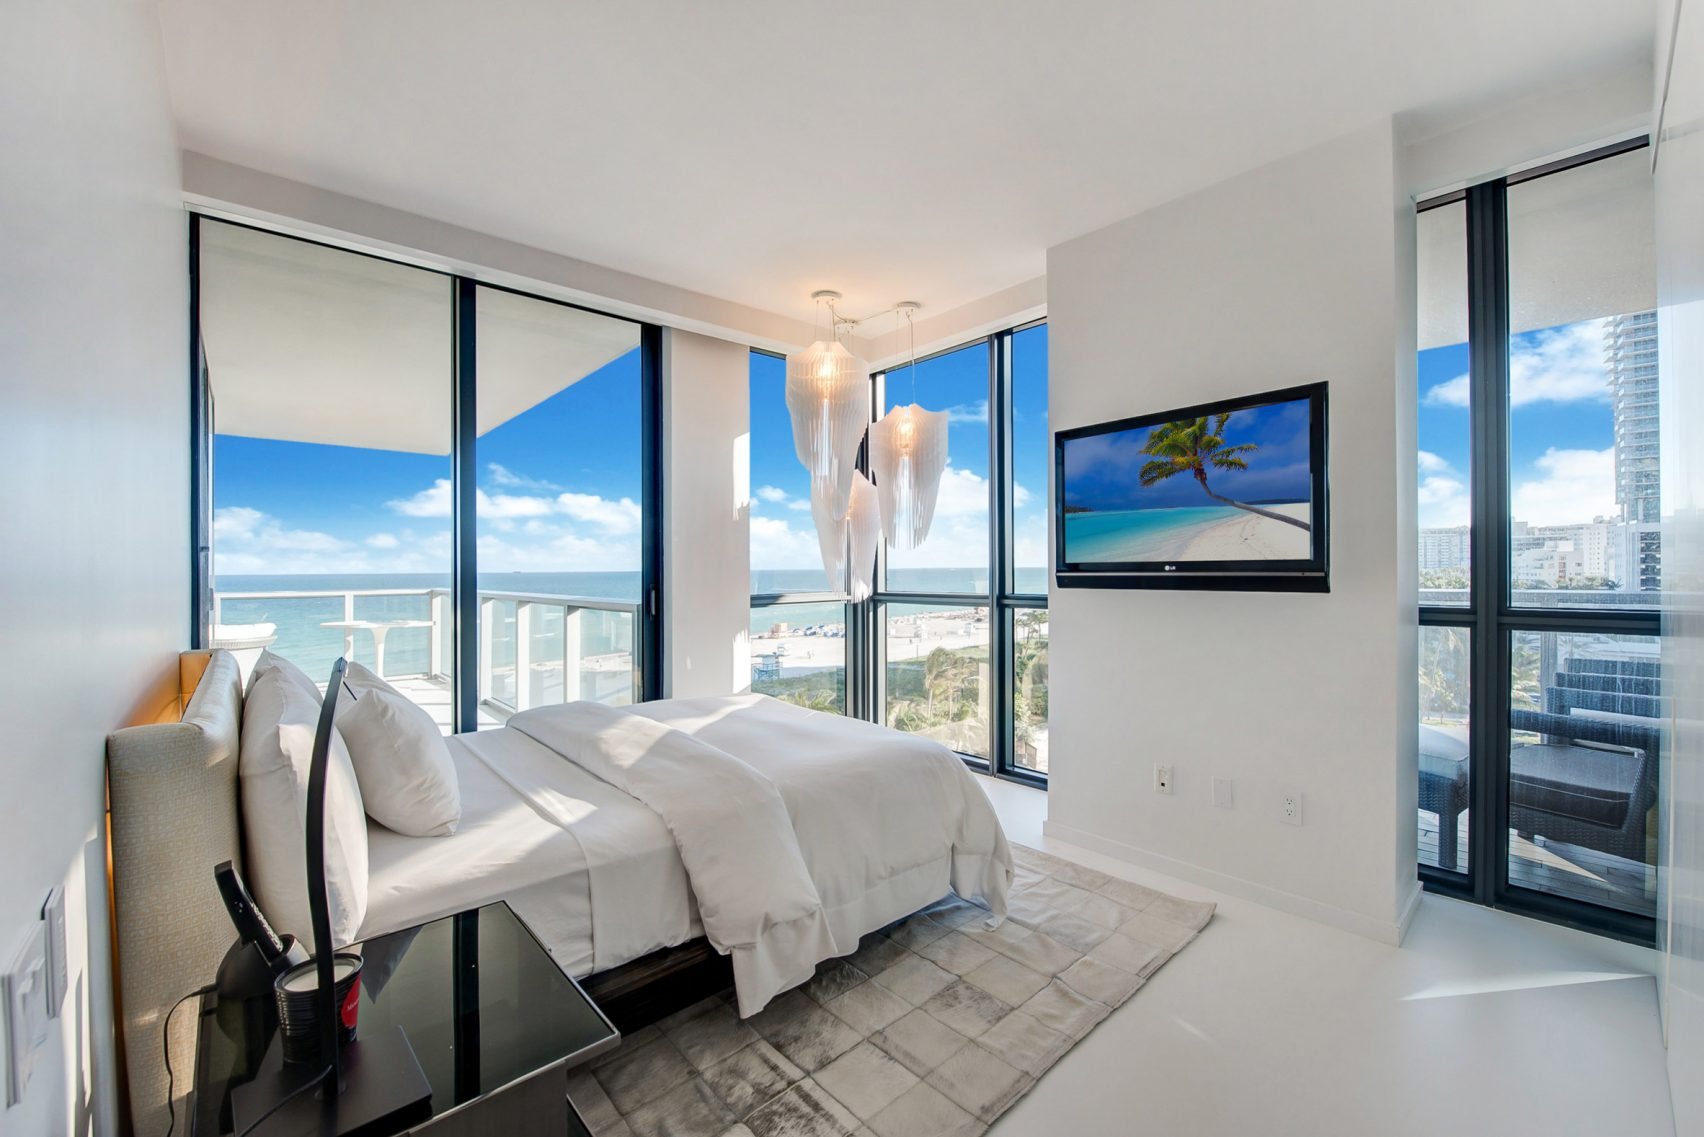 design, luxury, penthouse, american, miami, modern, zaha hadi, beach, architect, villa, billionaire, house, usa, bedroom, view